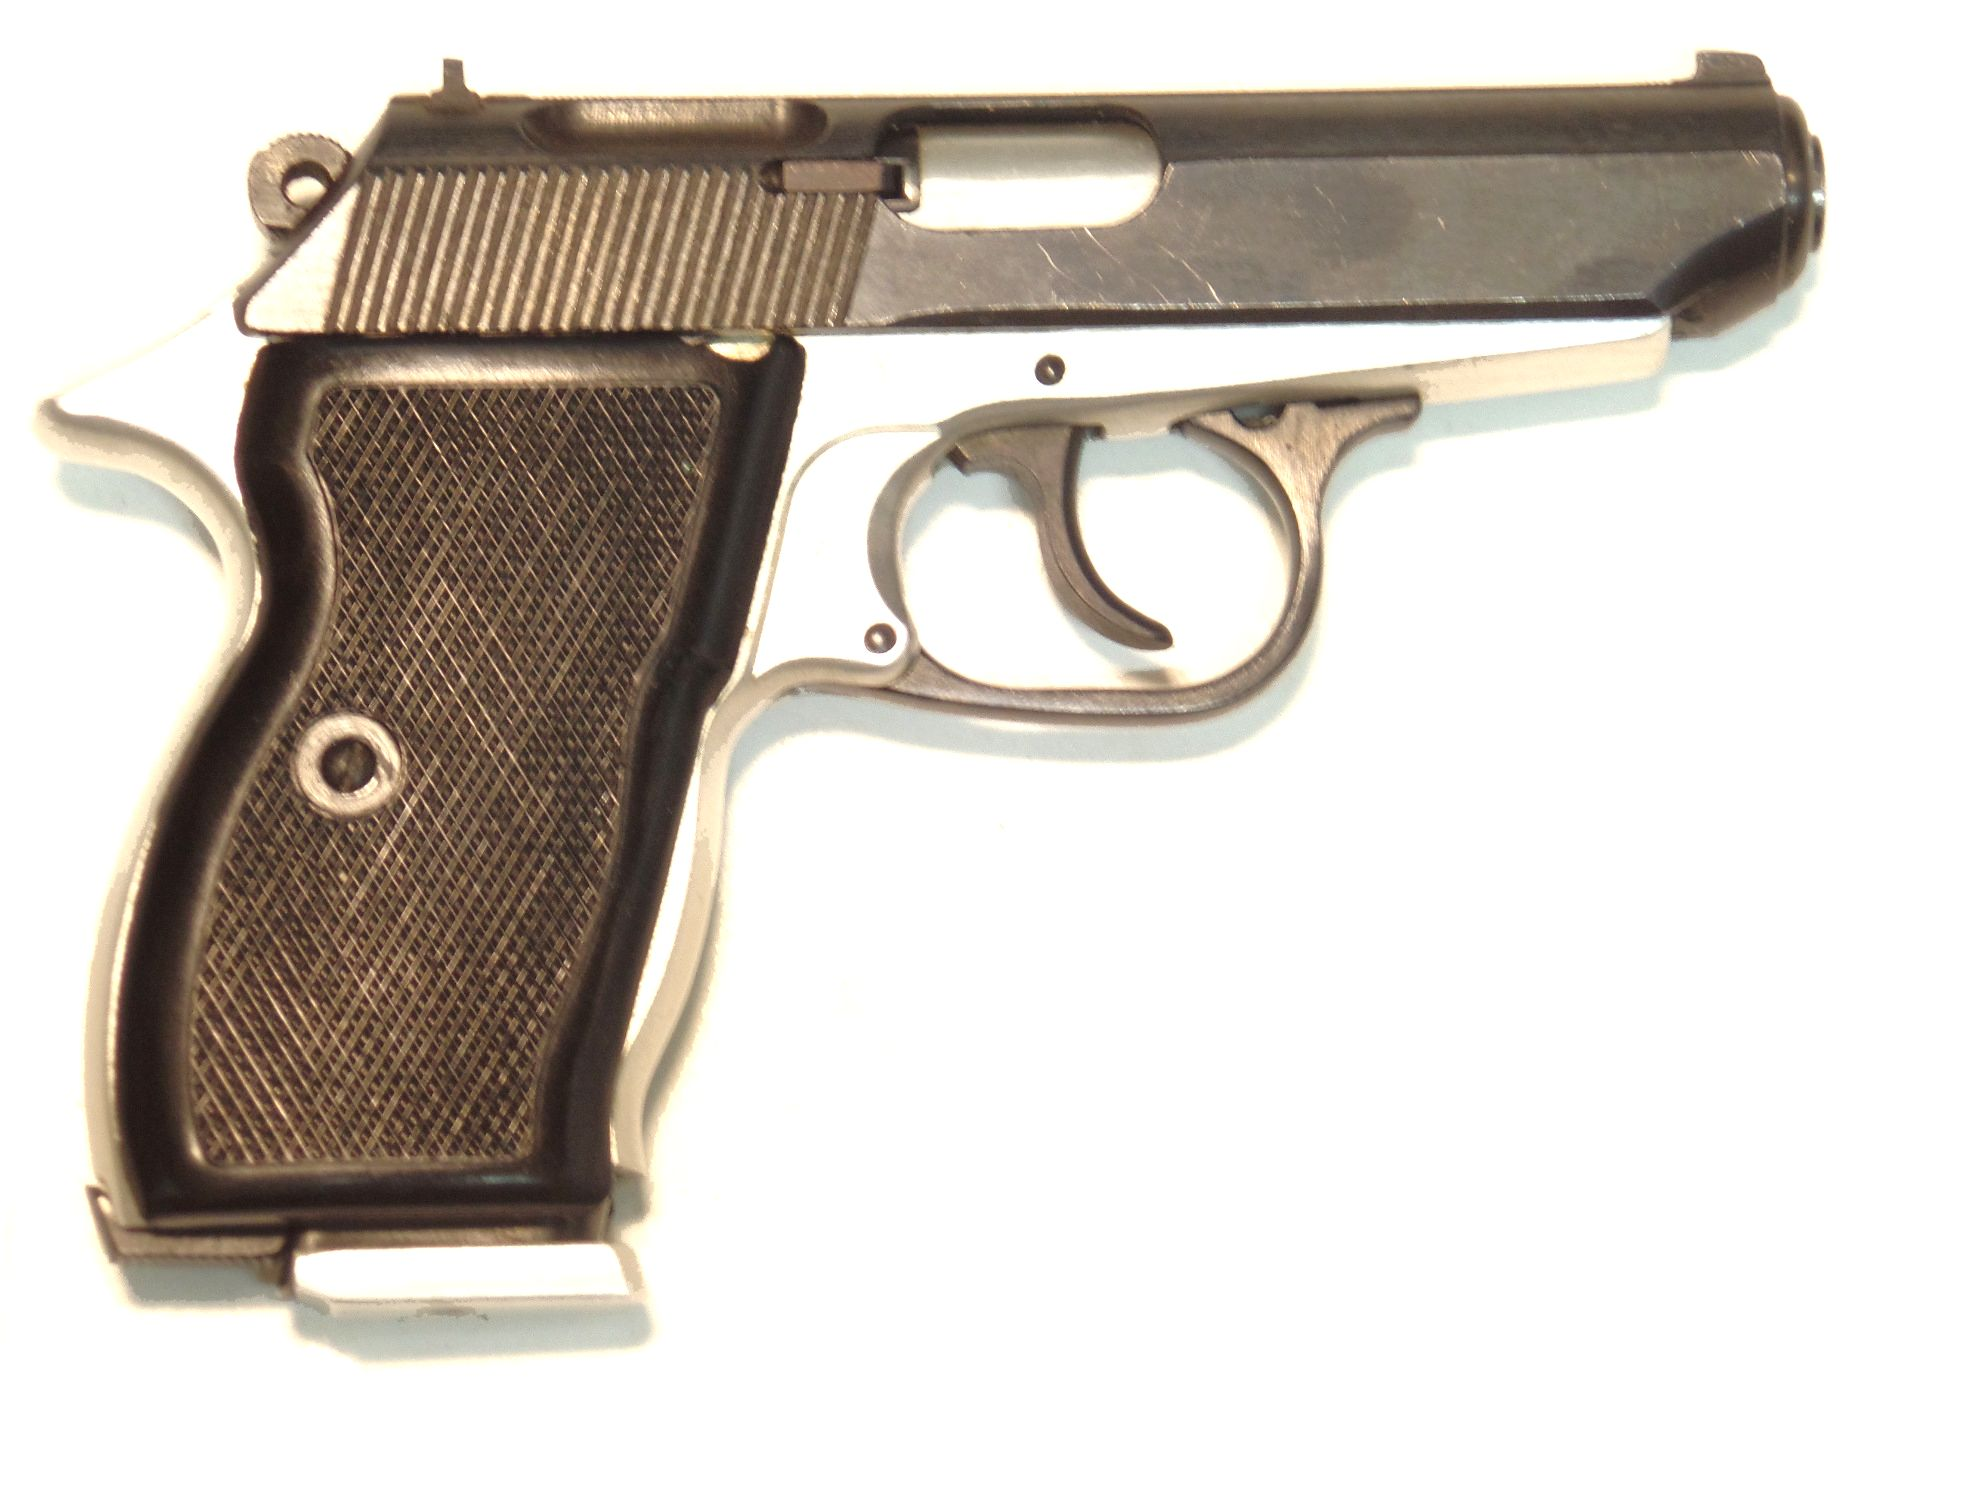 FEG /Carpati Mod 1974 calibre7.65 Browing